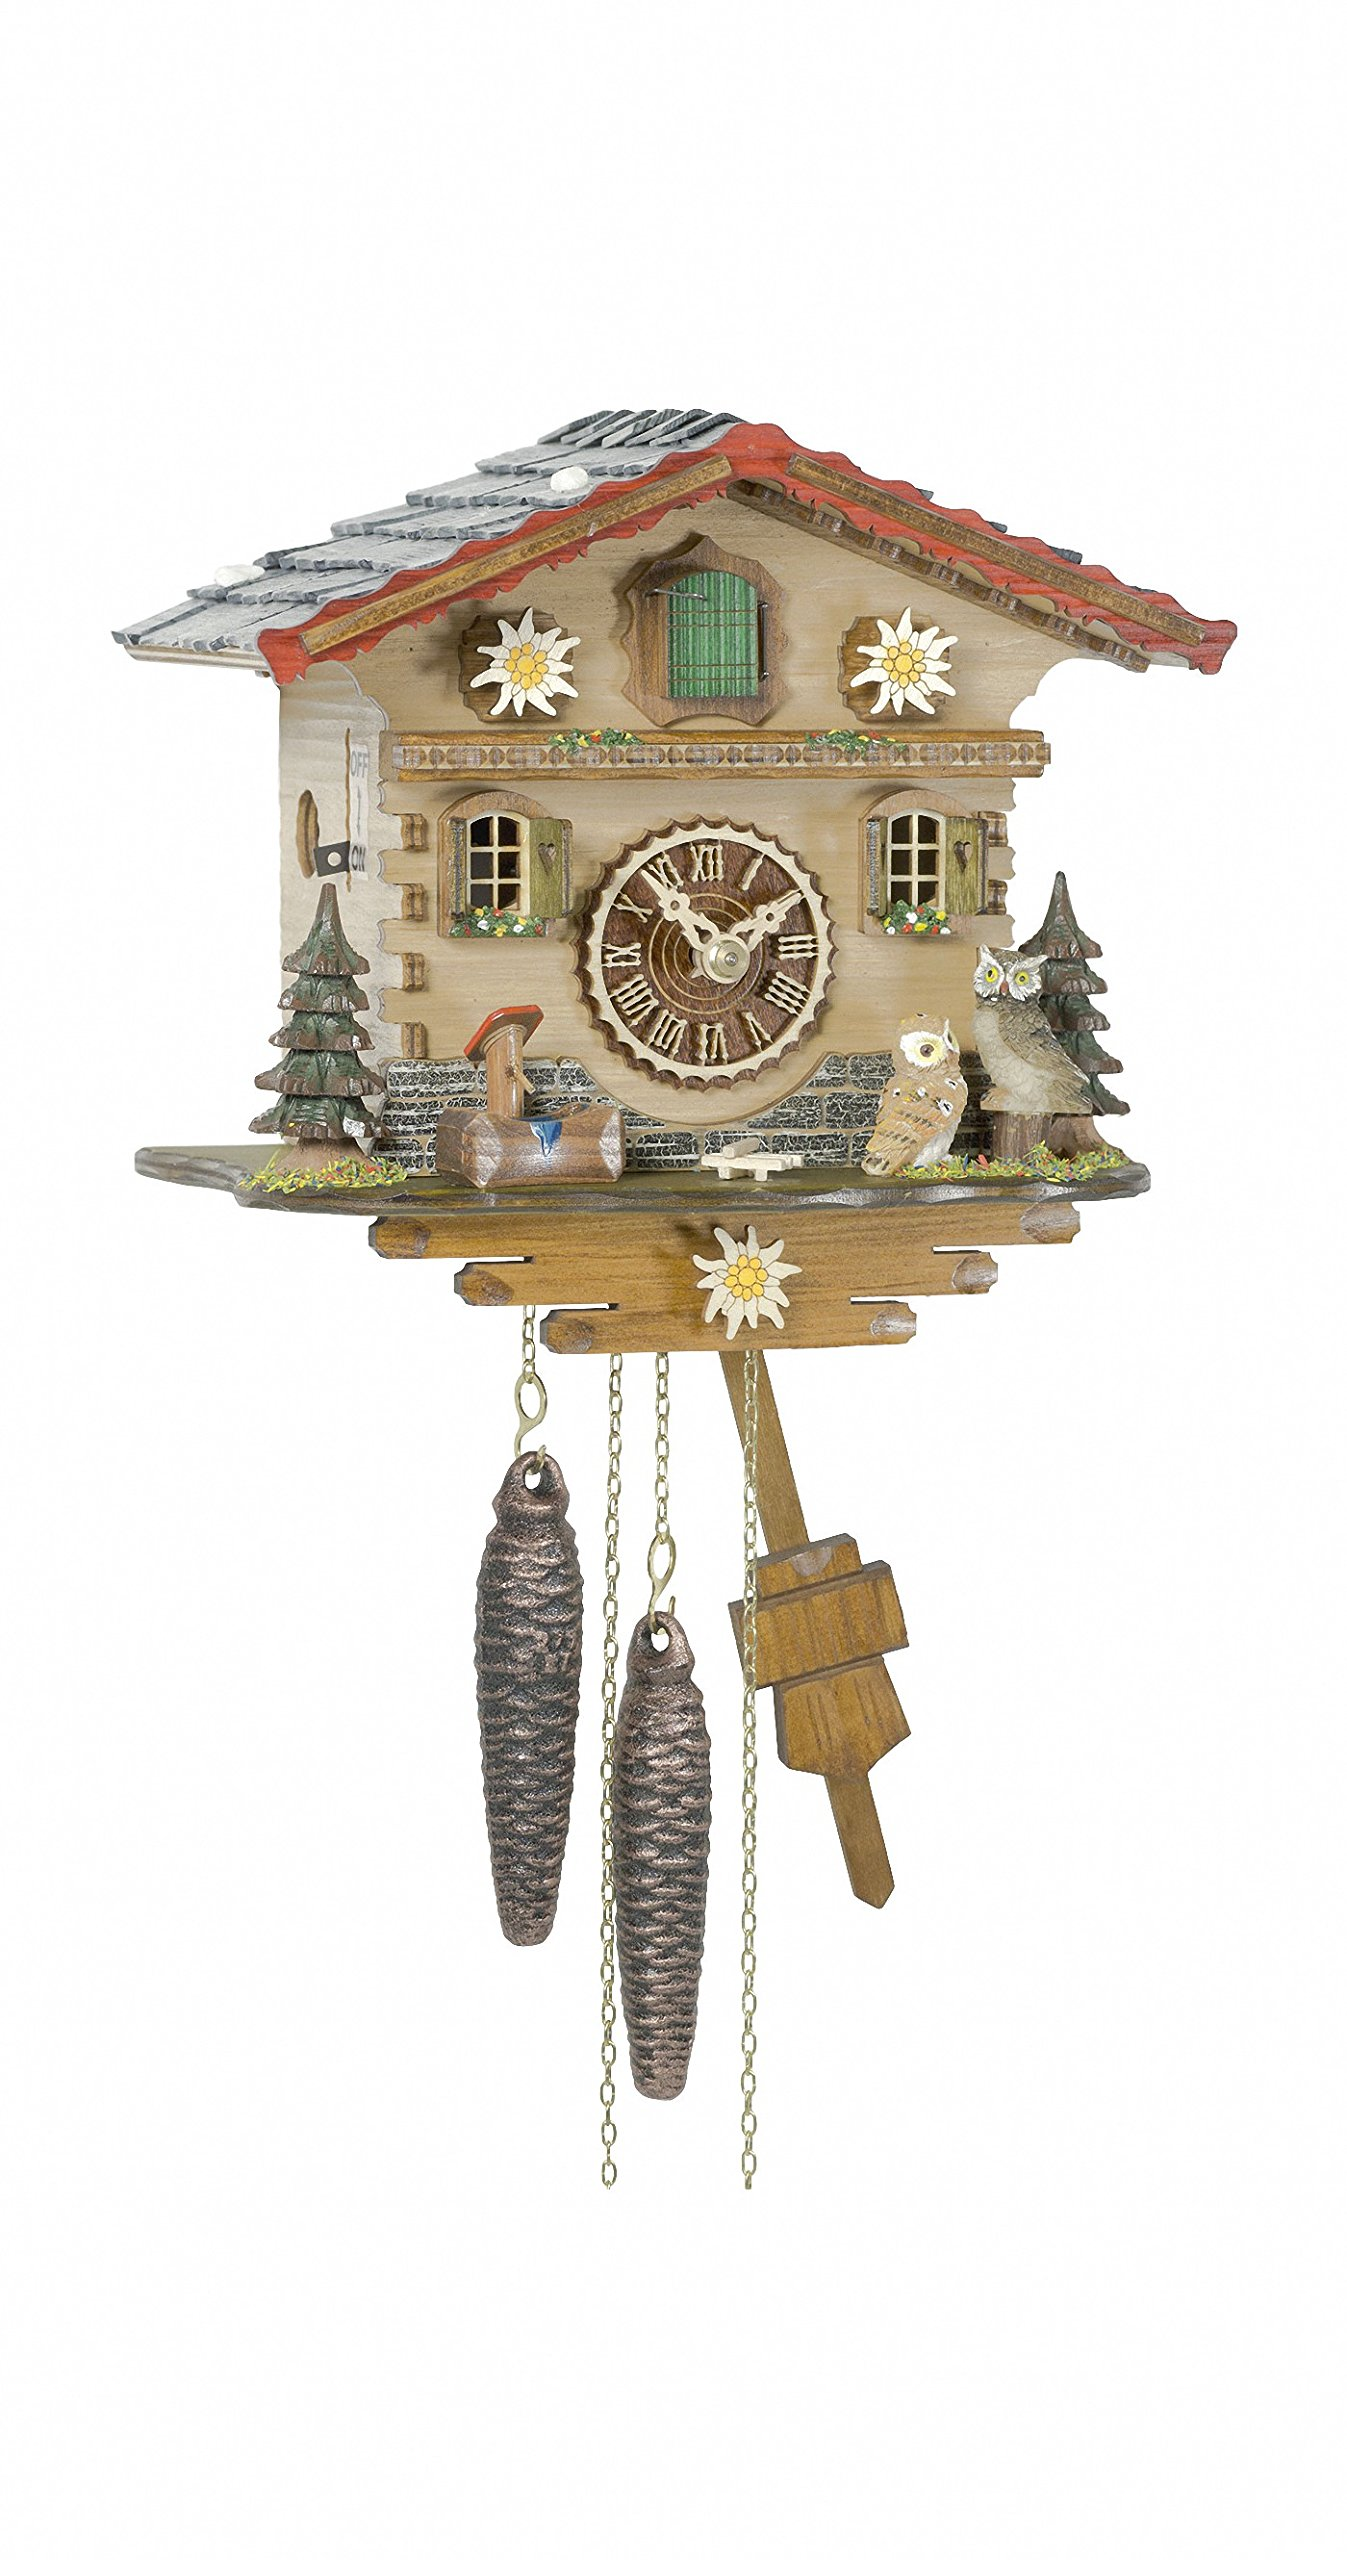 1 day running time cuckoo Clock Swiss House by Trenkle Uhren